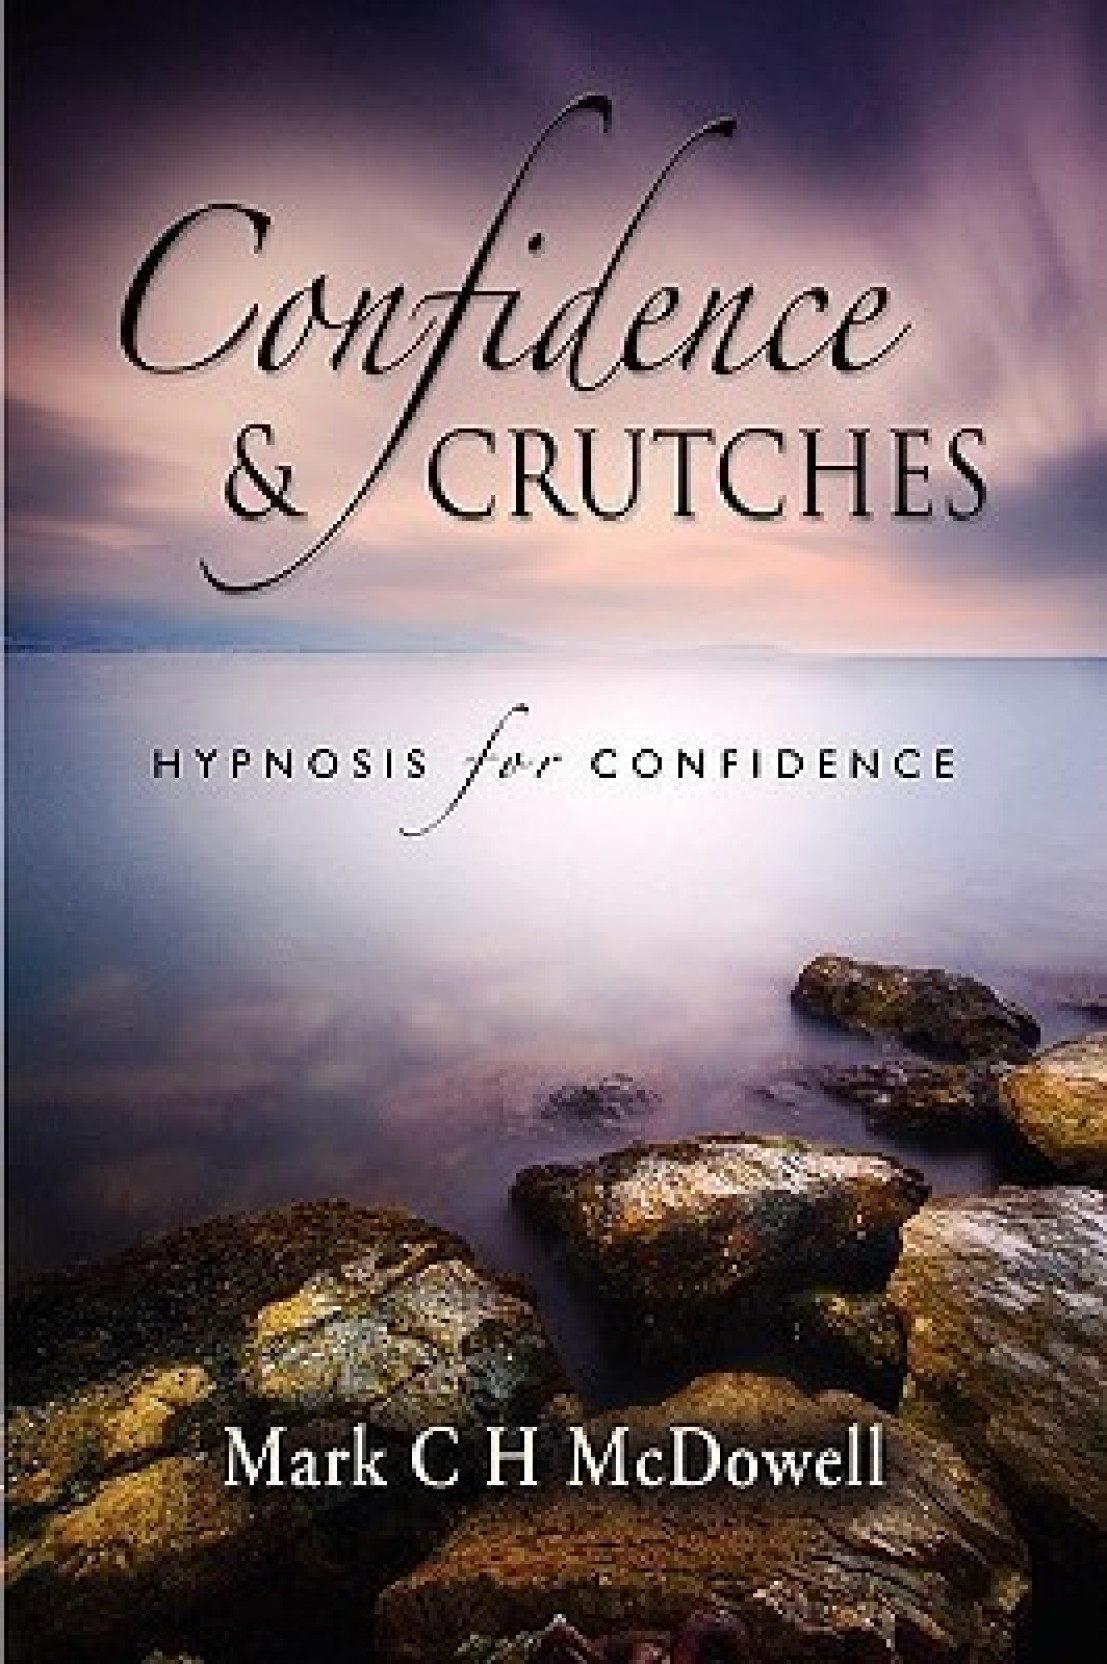 Confidence and Crutches: Buy Confidence and Crutches by Mark